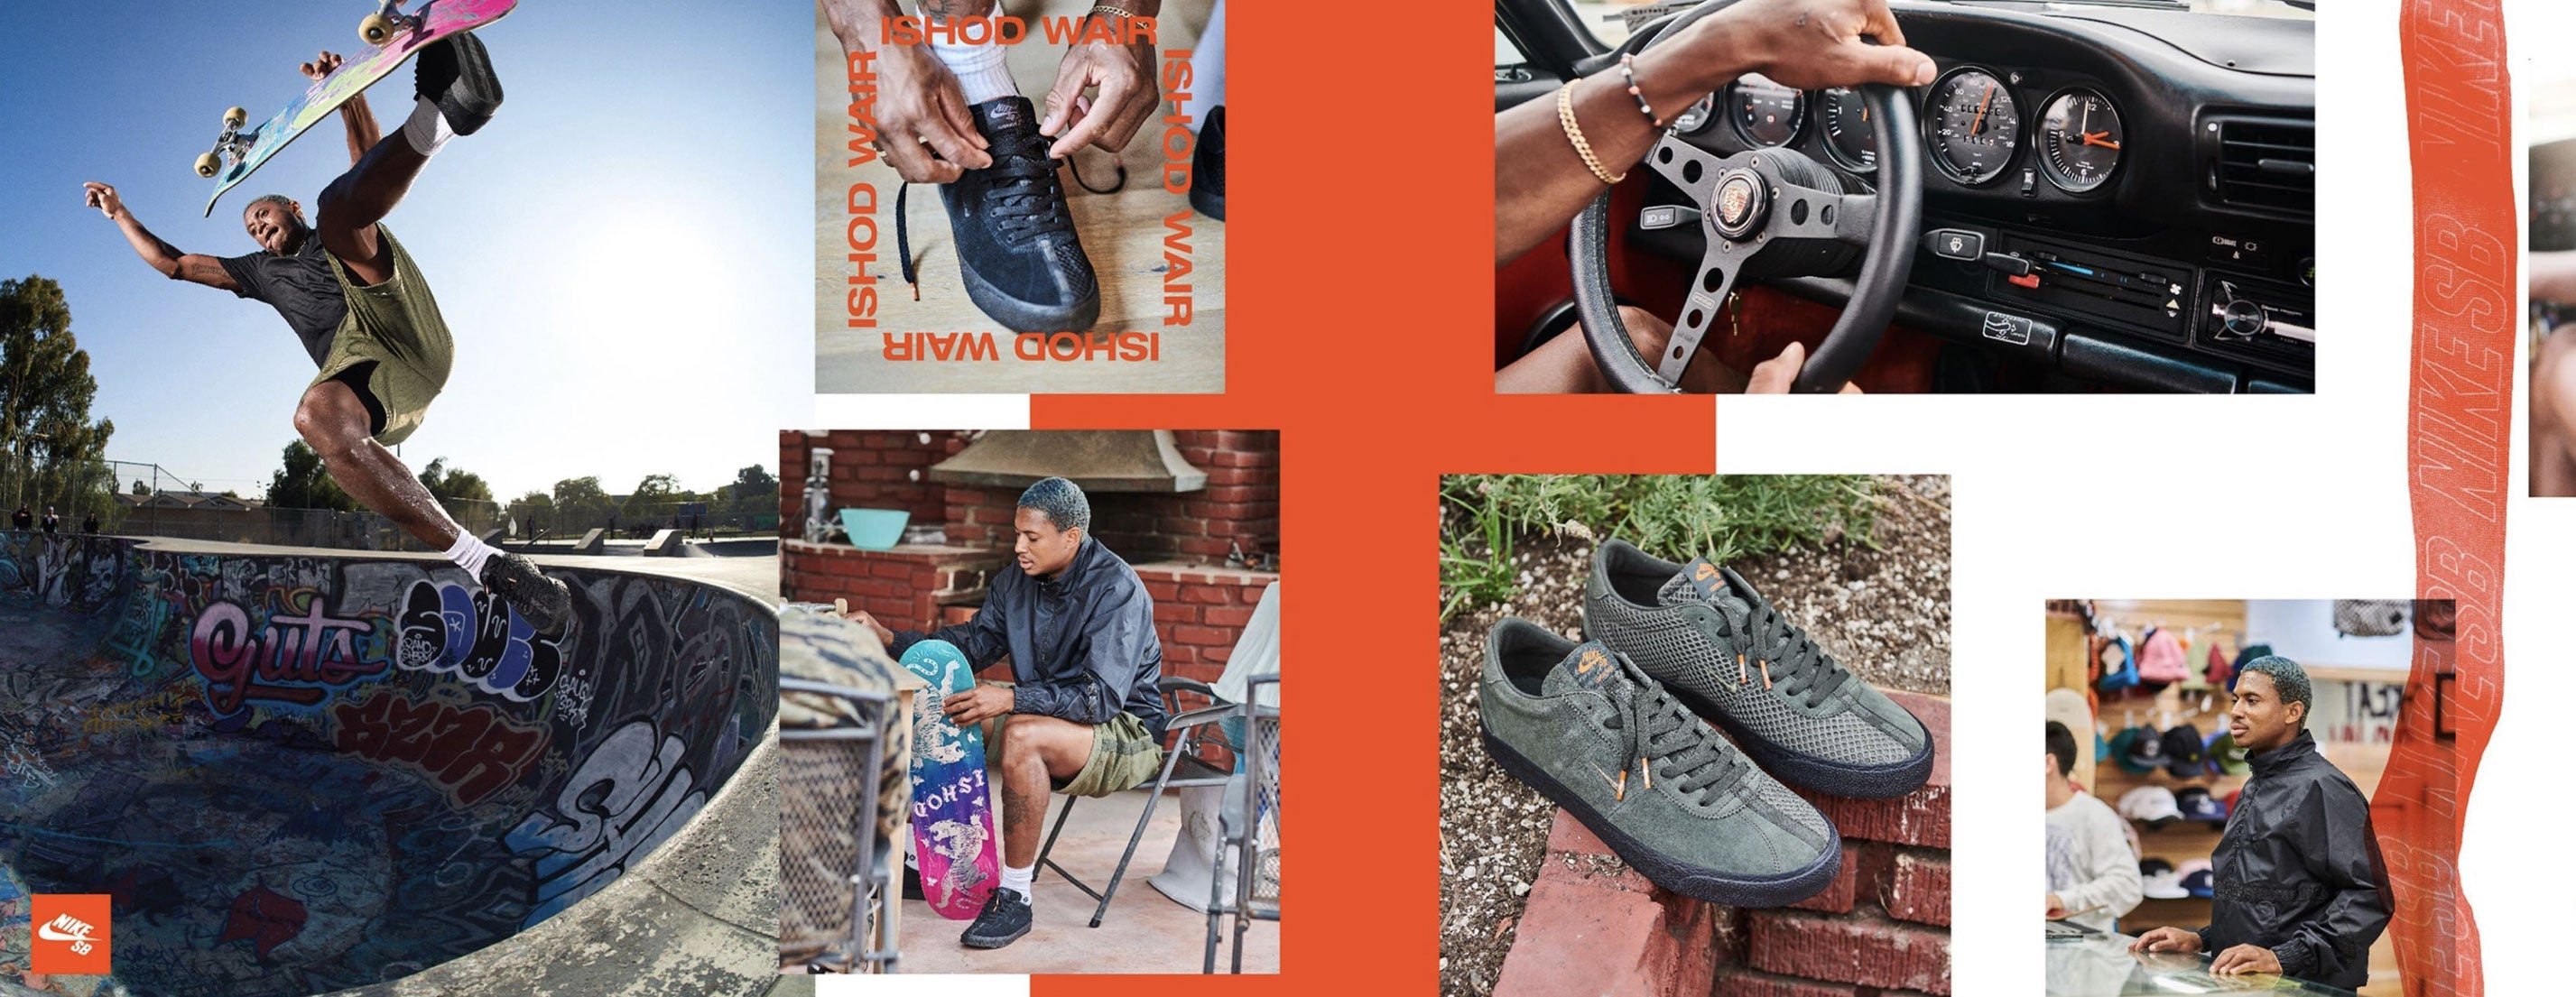 Welcome Skate Store Shoes Clothing Skateboards